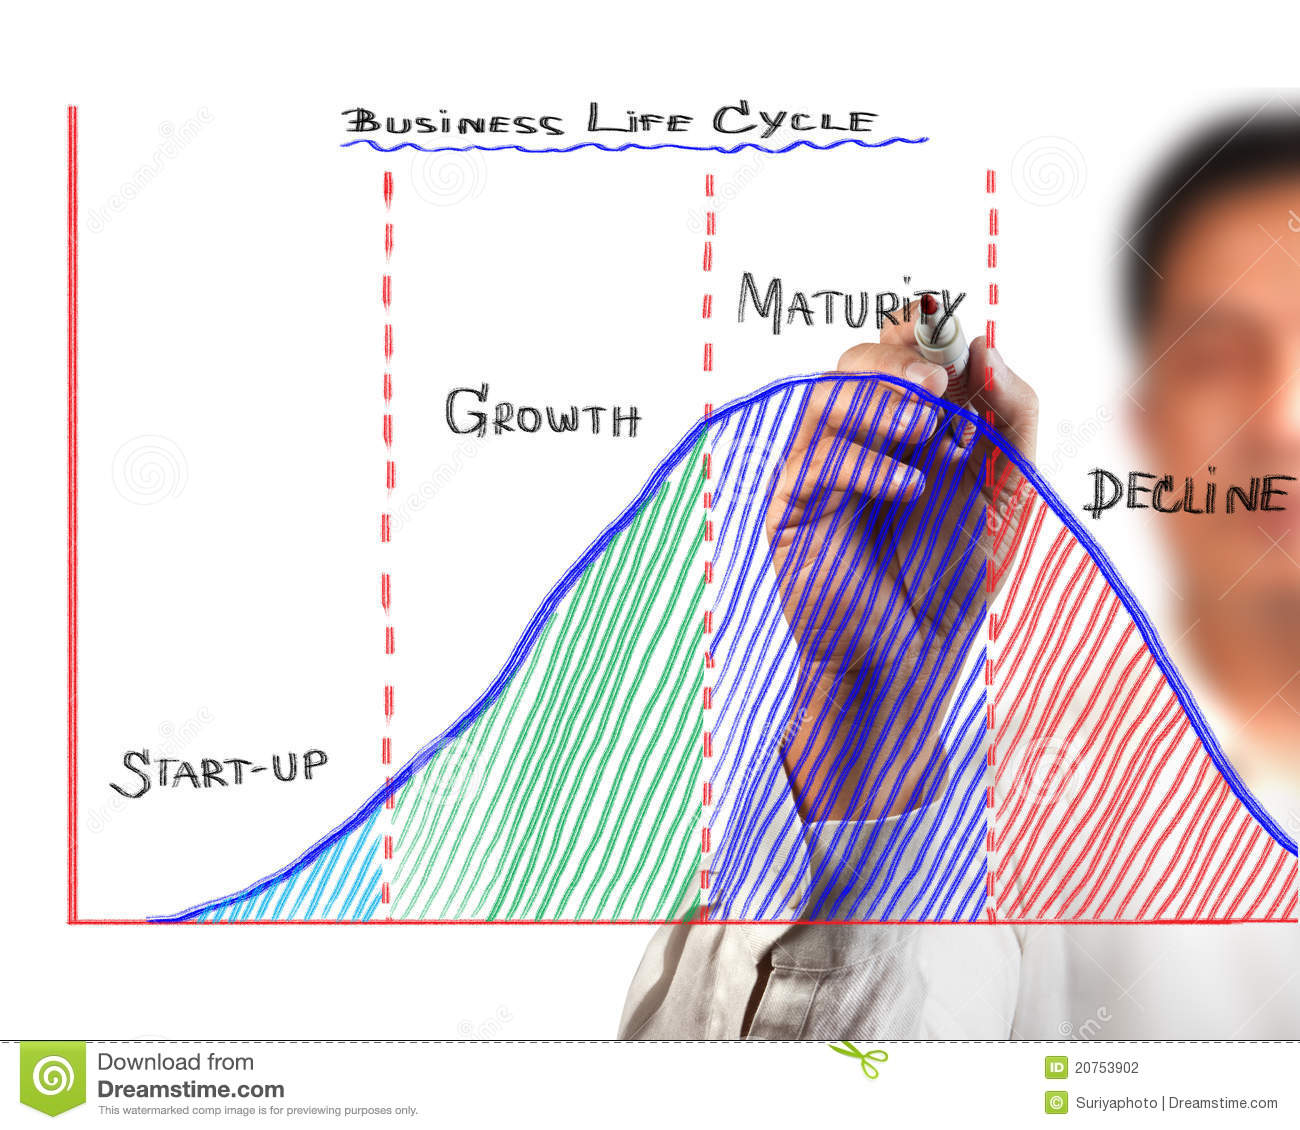 Business life cycle nike